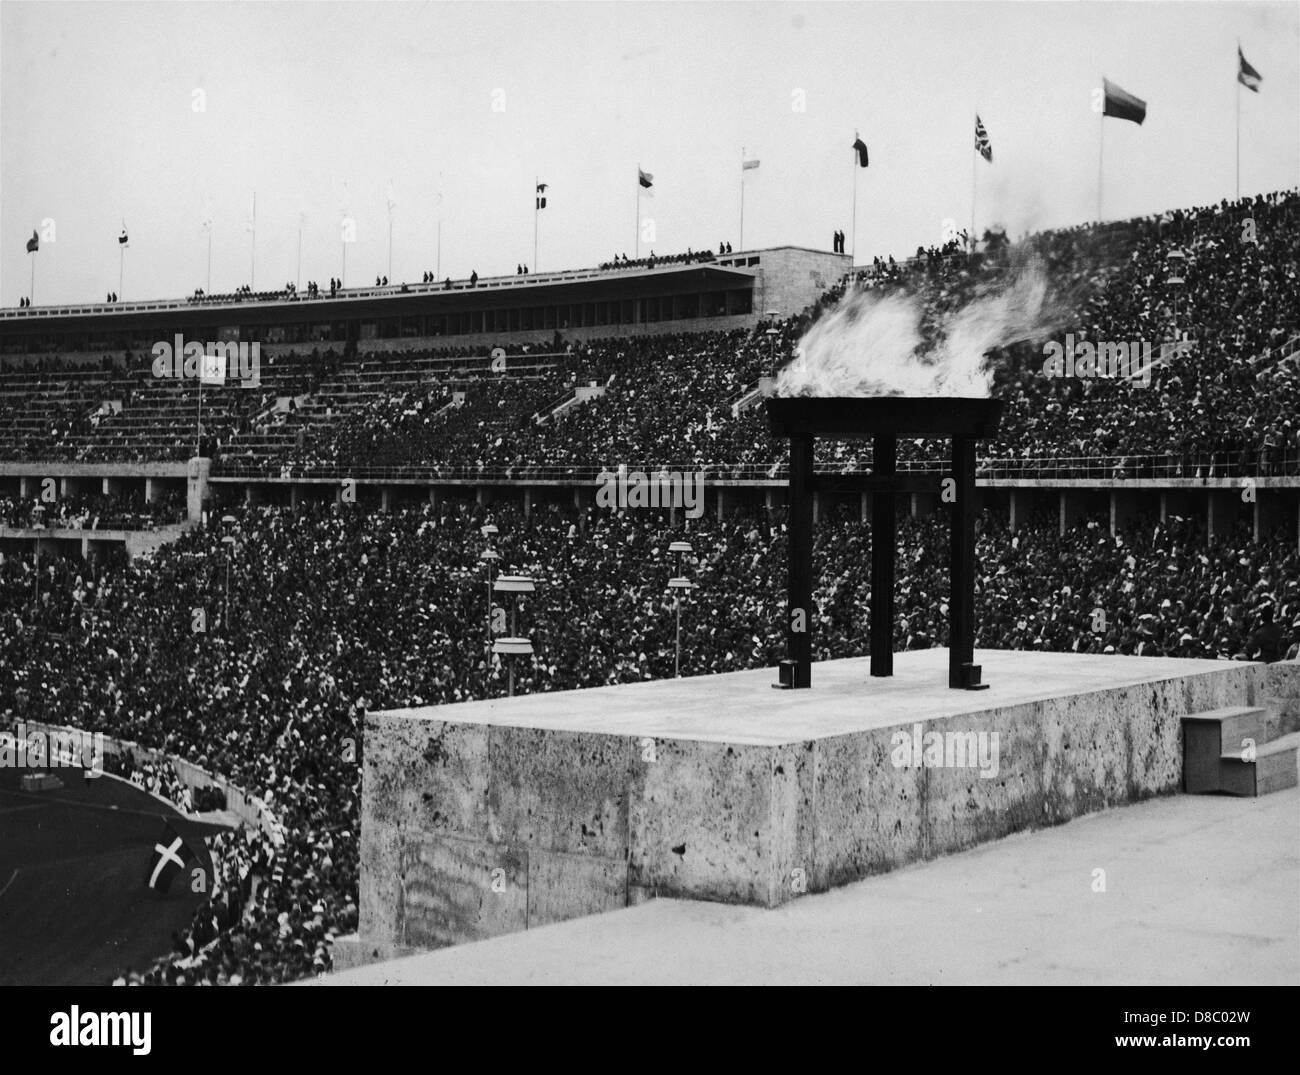 Inauguration of the Olympic Games in Berlin 1936 - the Olympic Flame - Stock Image